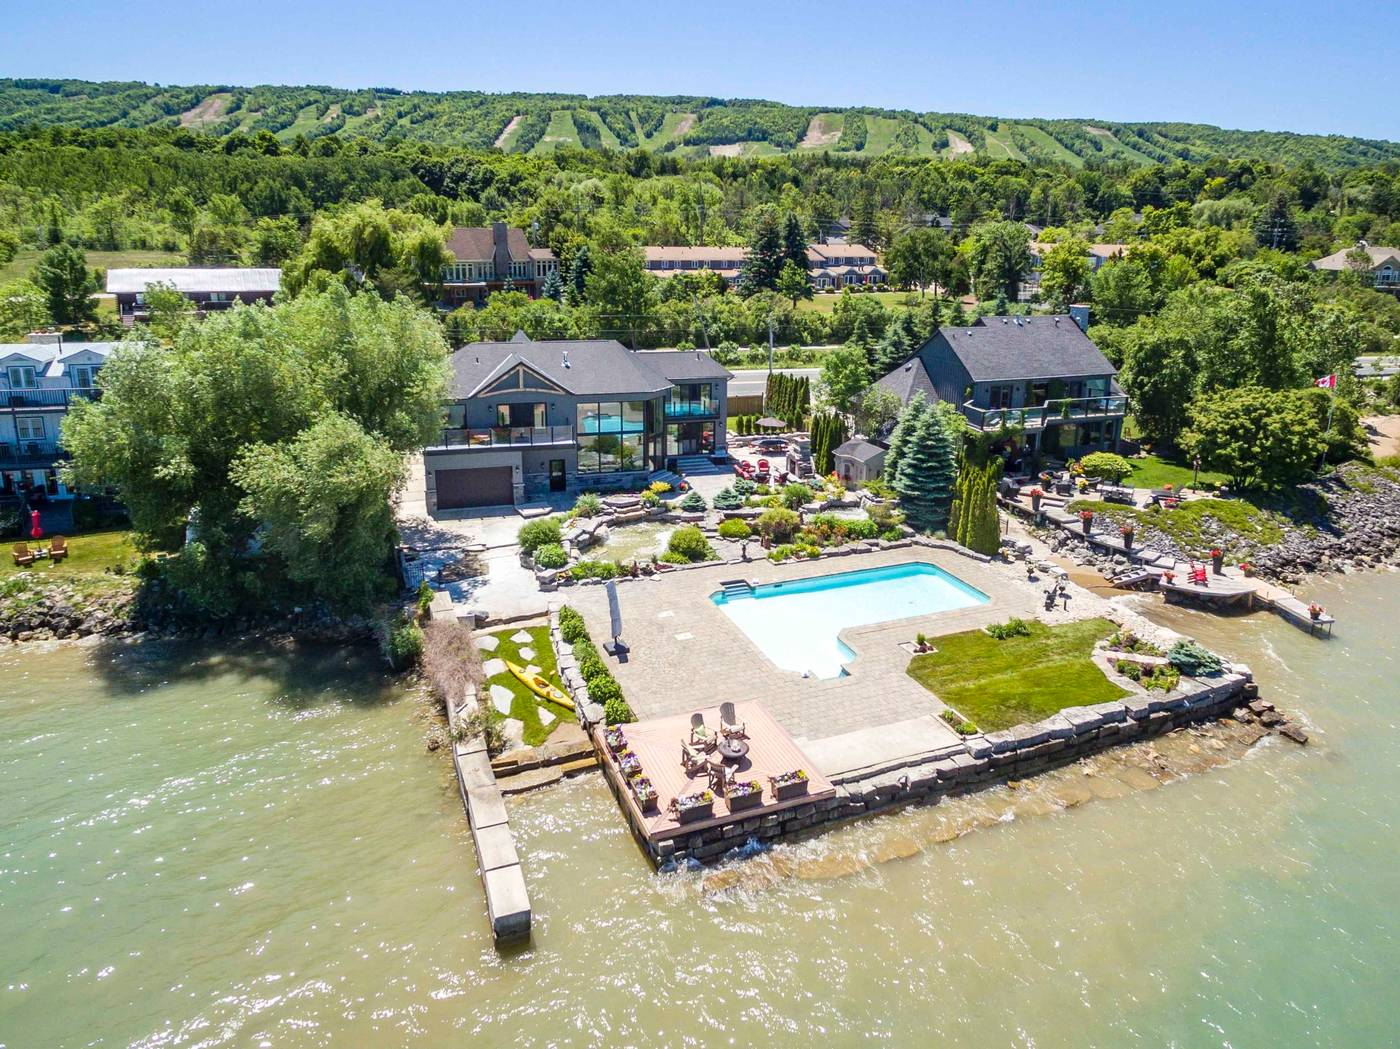 Luxury Waterfront Living In Canada June 3 2019